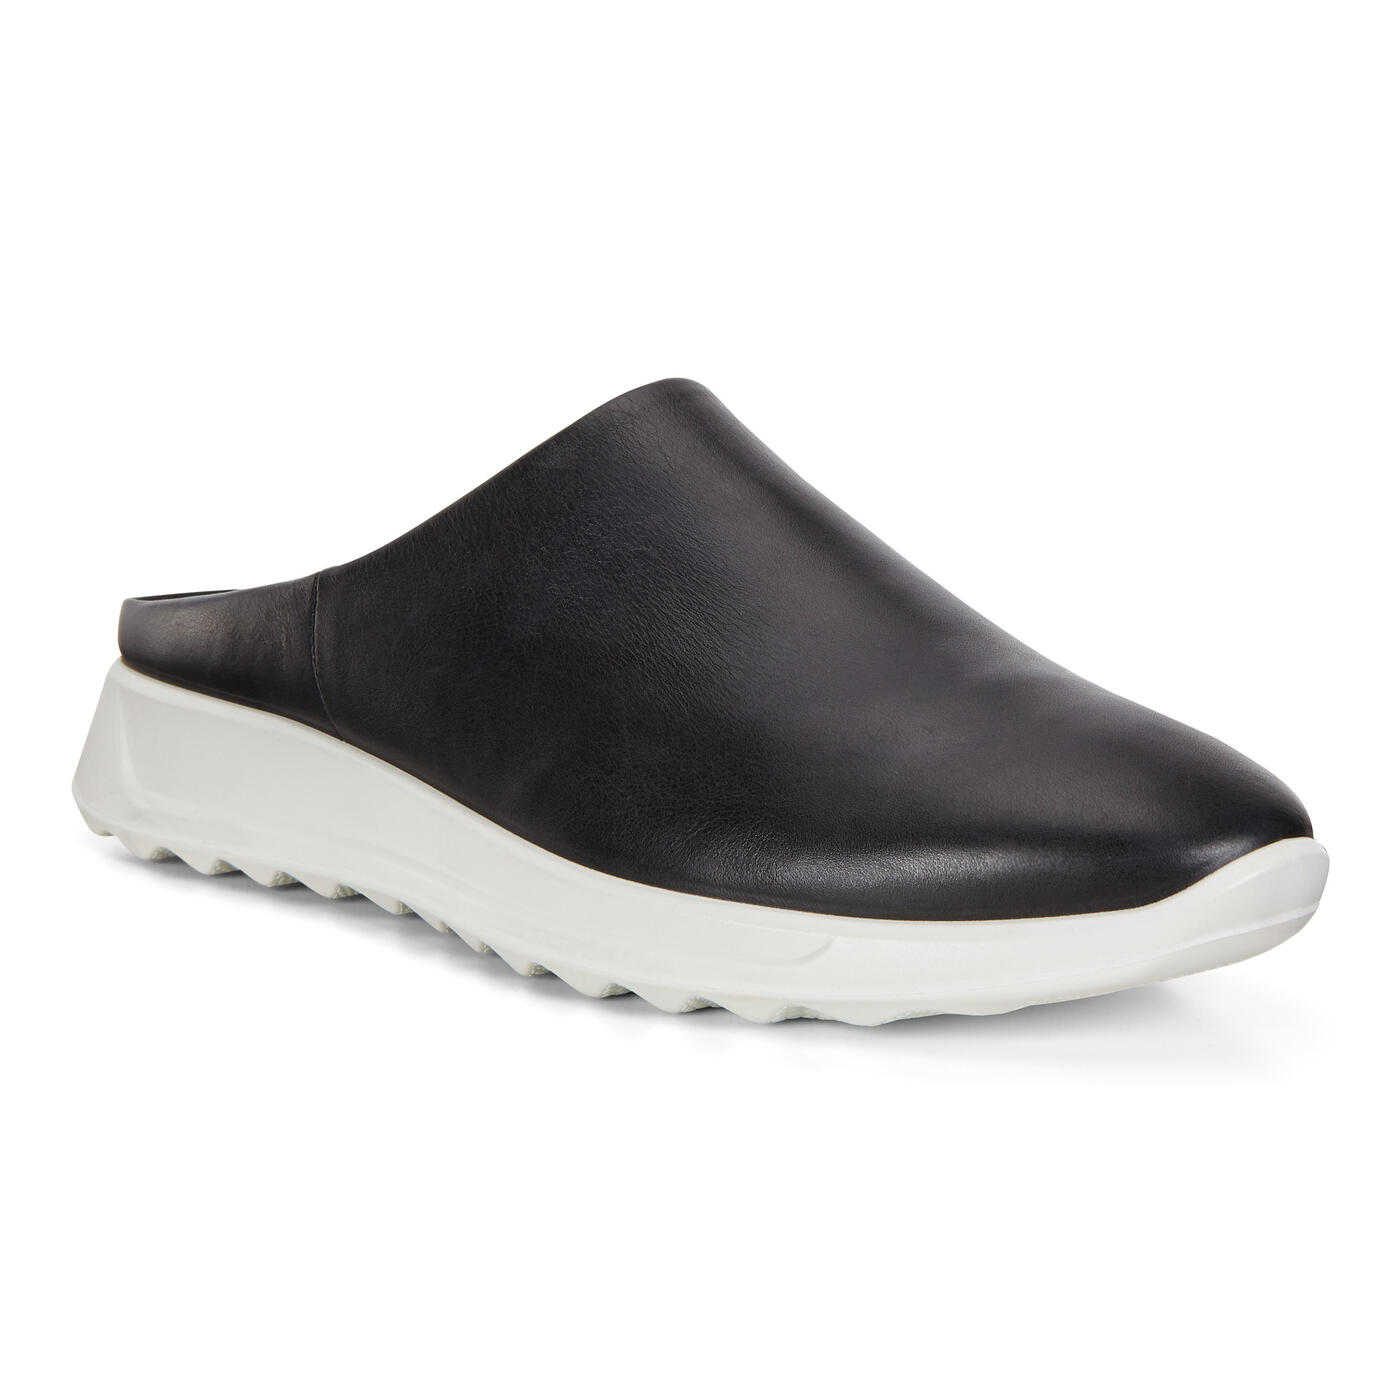 ECCO Flexure Runner Women's Mules